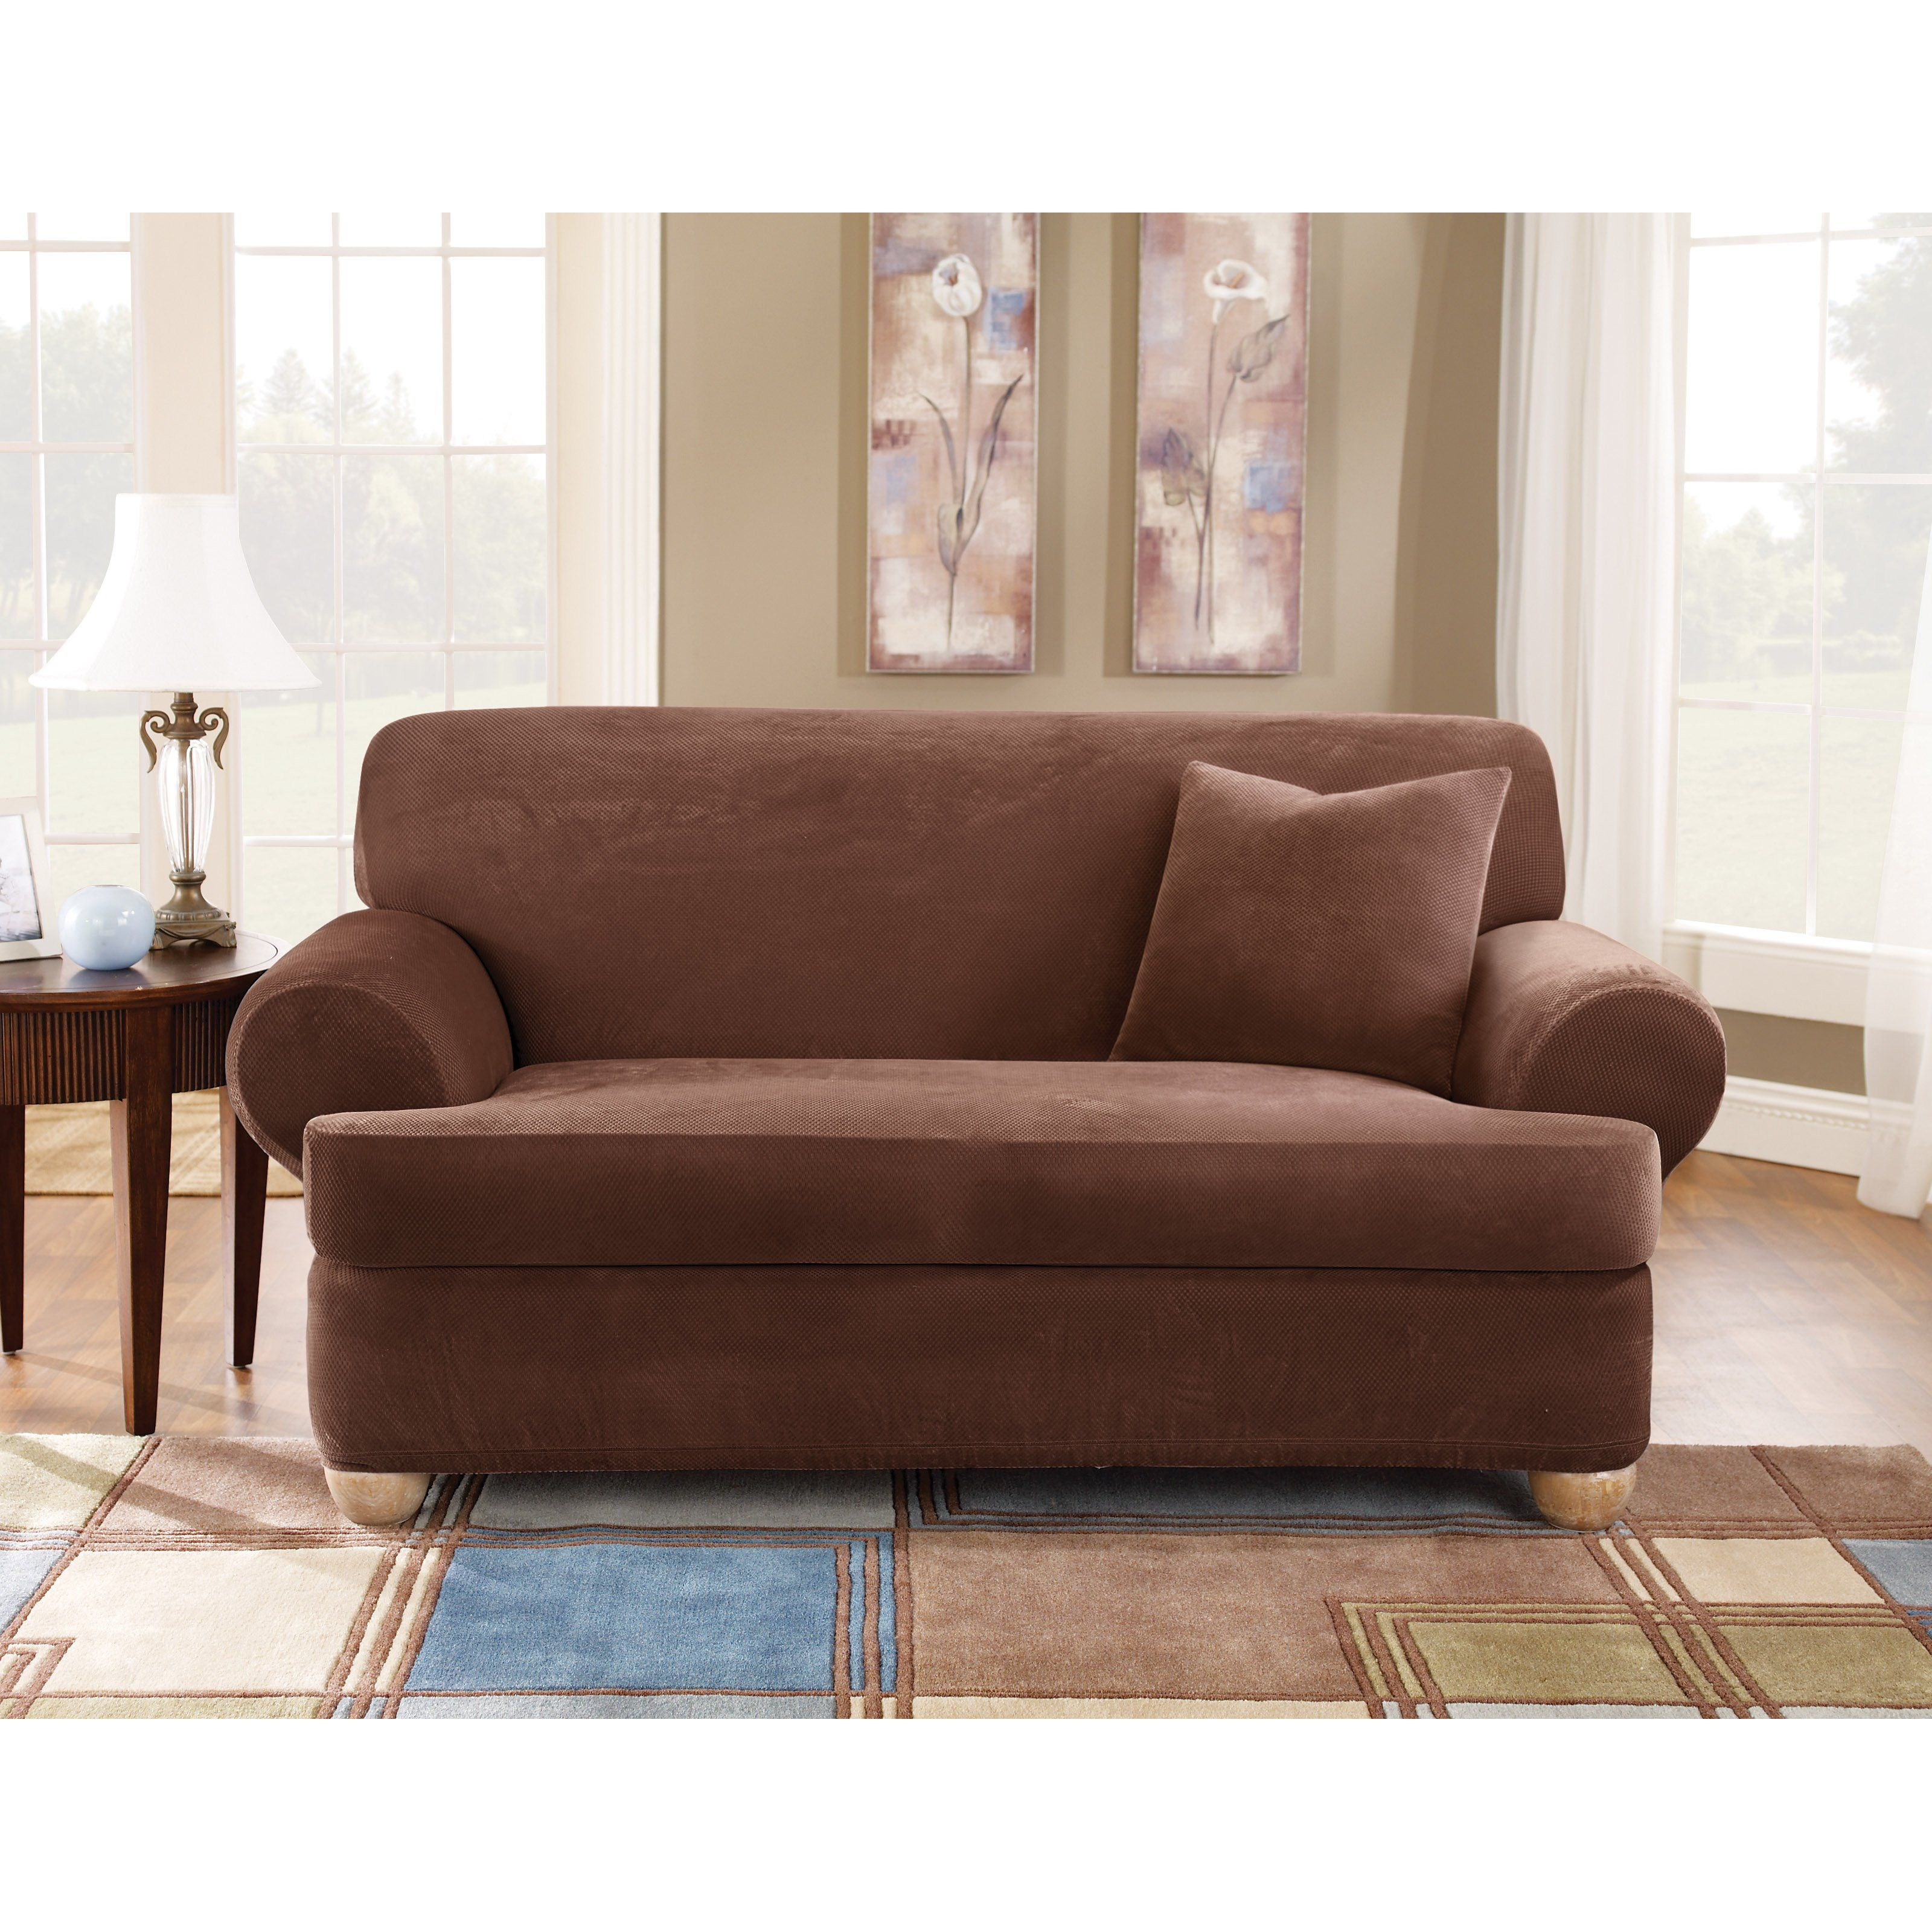 Sure Fit Stretch Pique T Cushion Three Piece Loveseat Slipcover Cushions On Sofa Sofa Covers Slipcovered Sofa 3 piece t cushion sofa slipcover